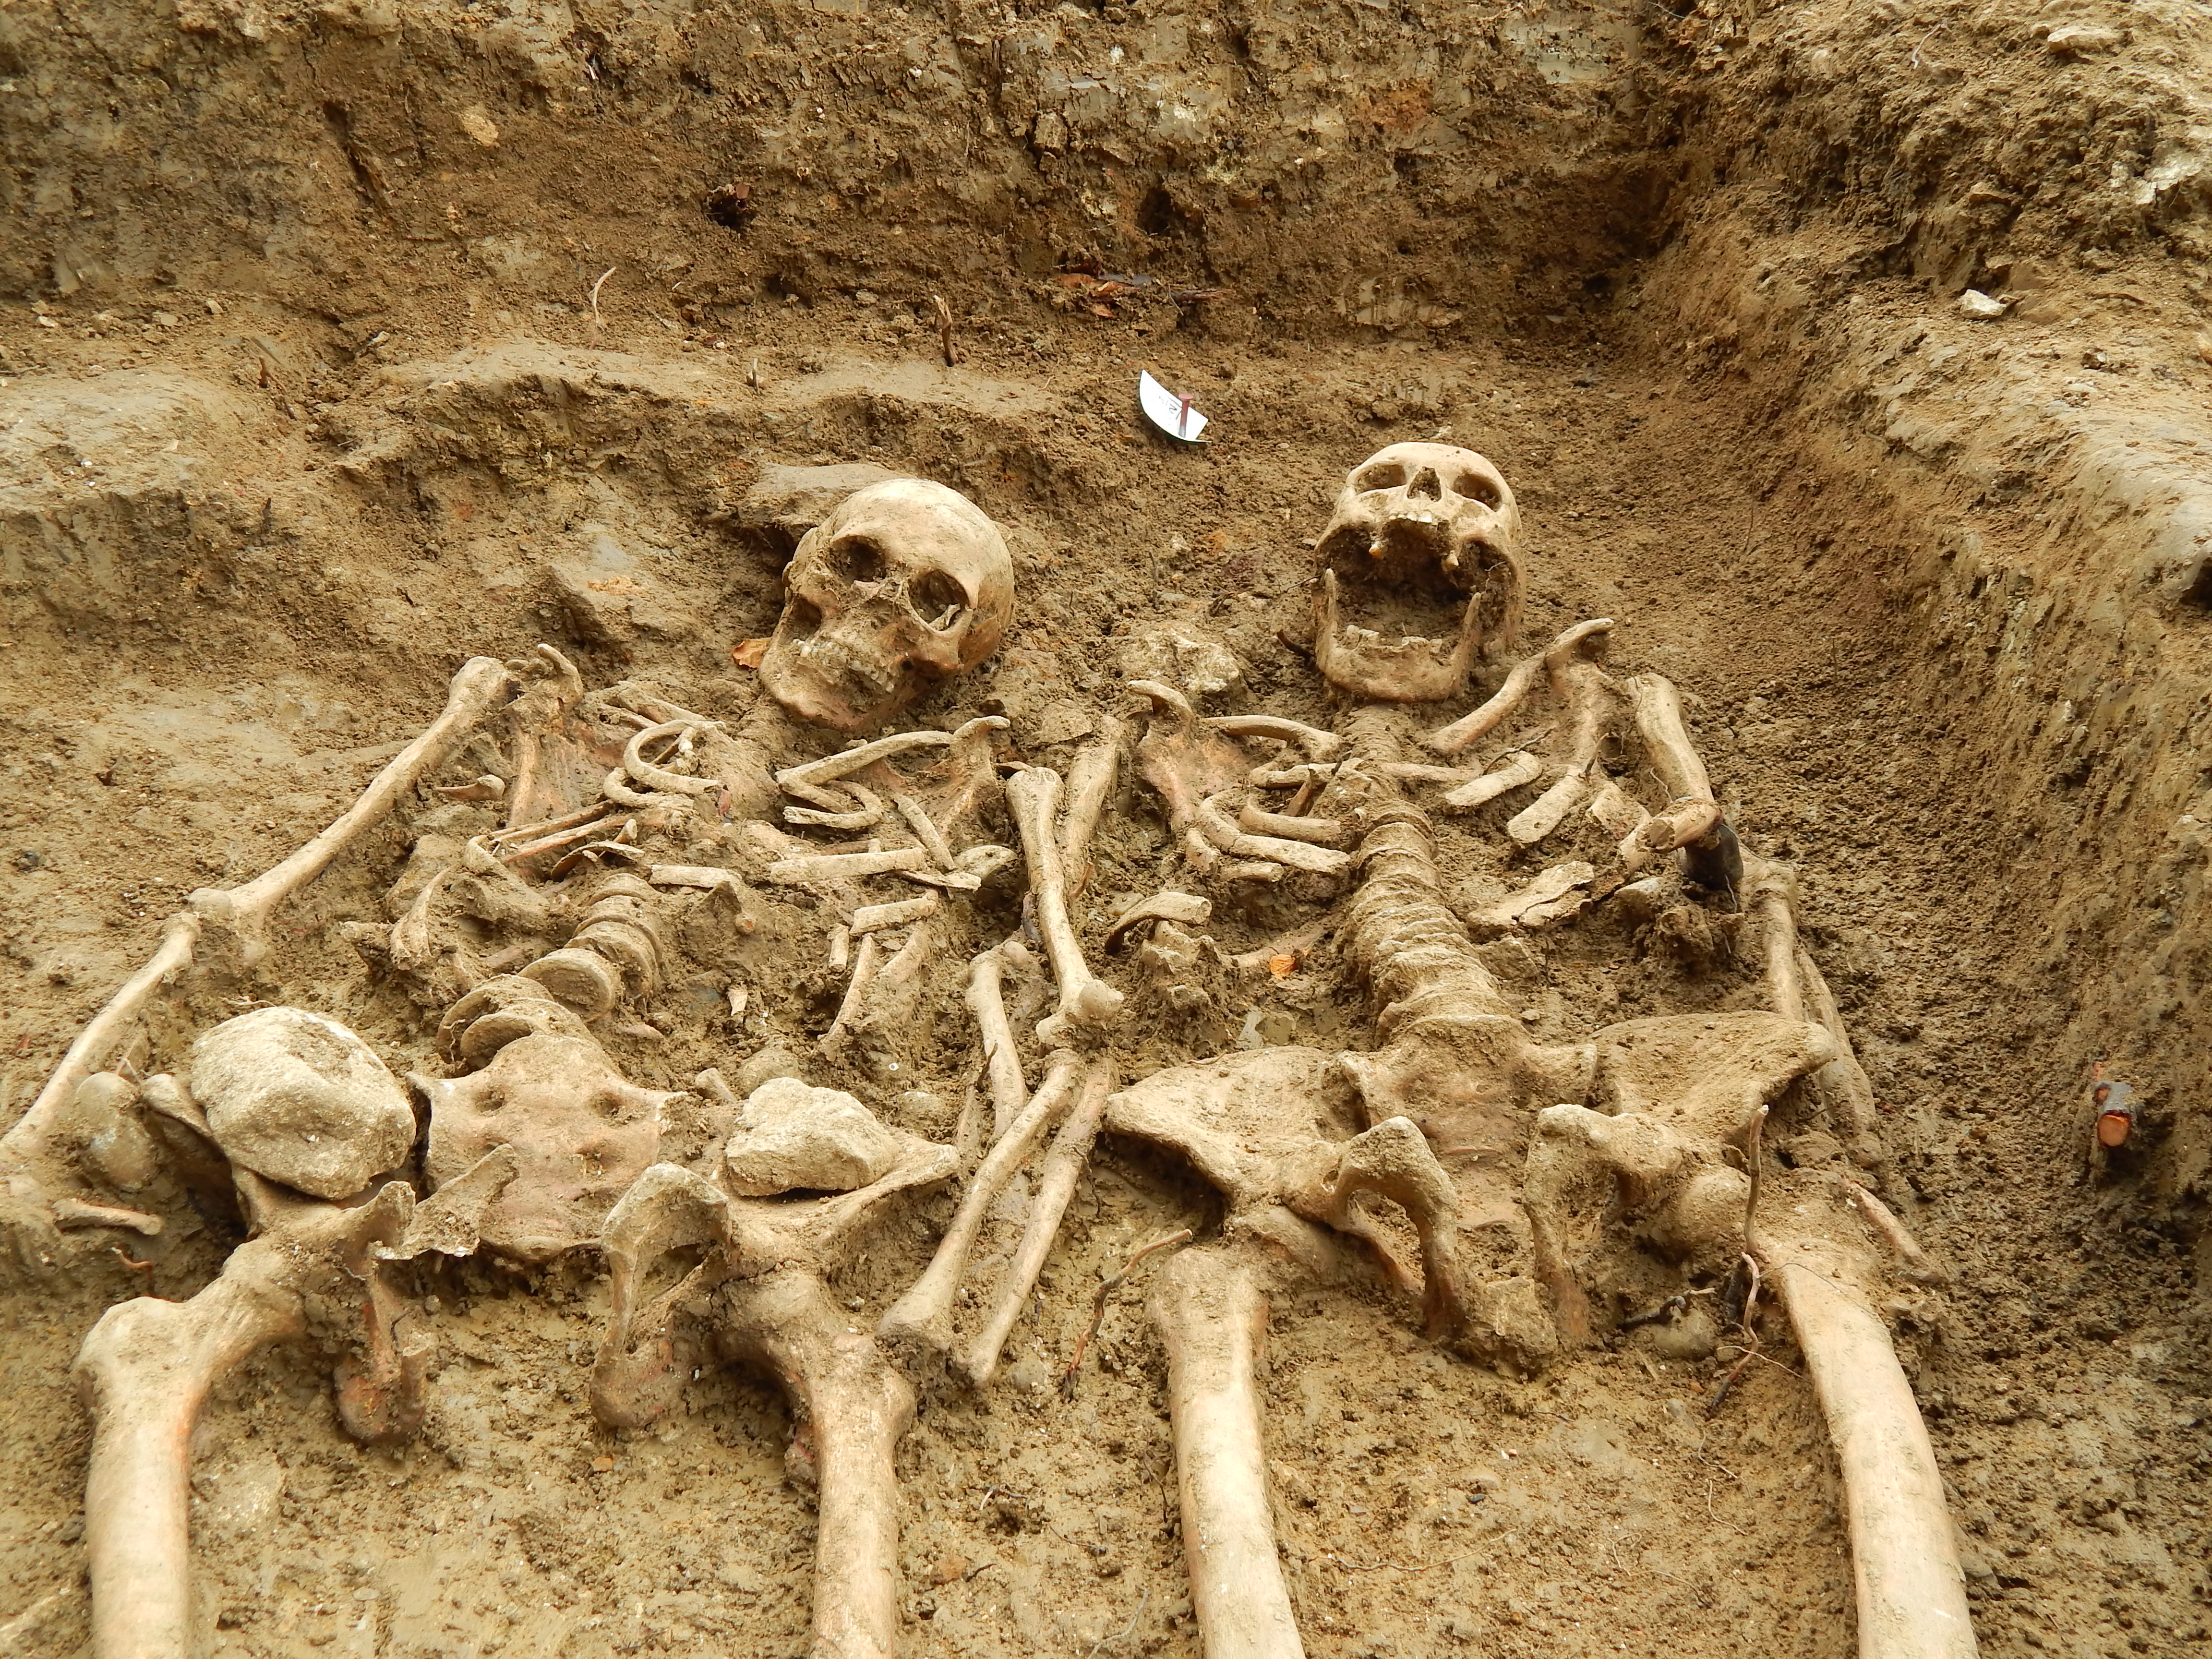 Lost Chapel Skeletons Found Holding Hands After 700